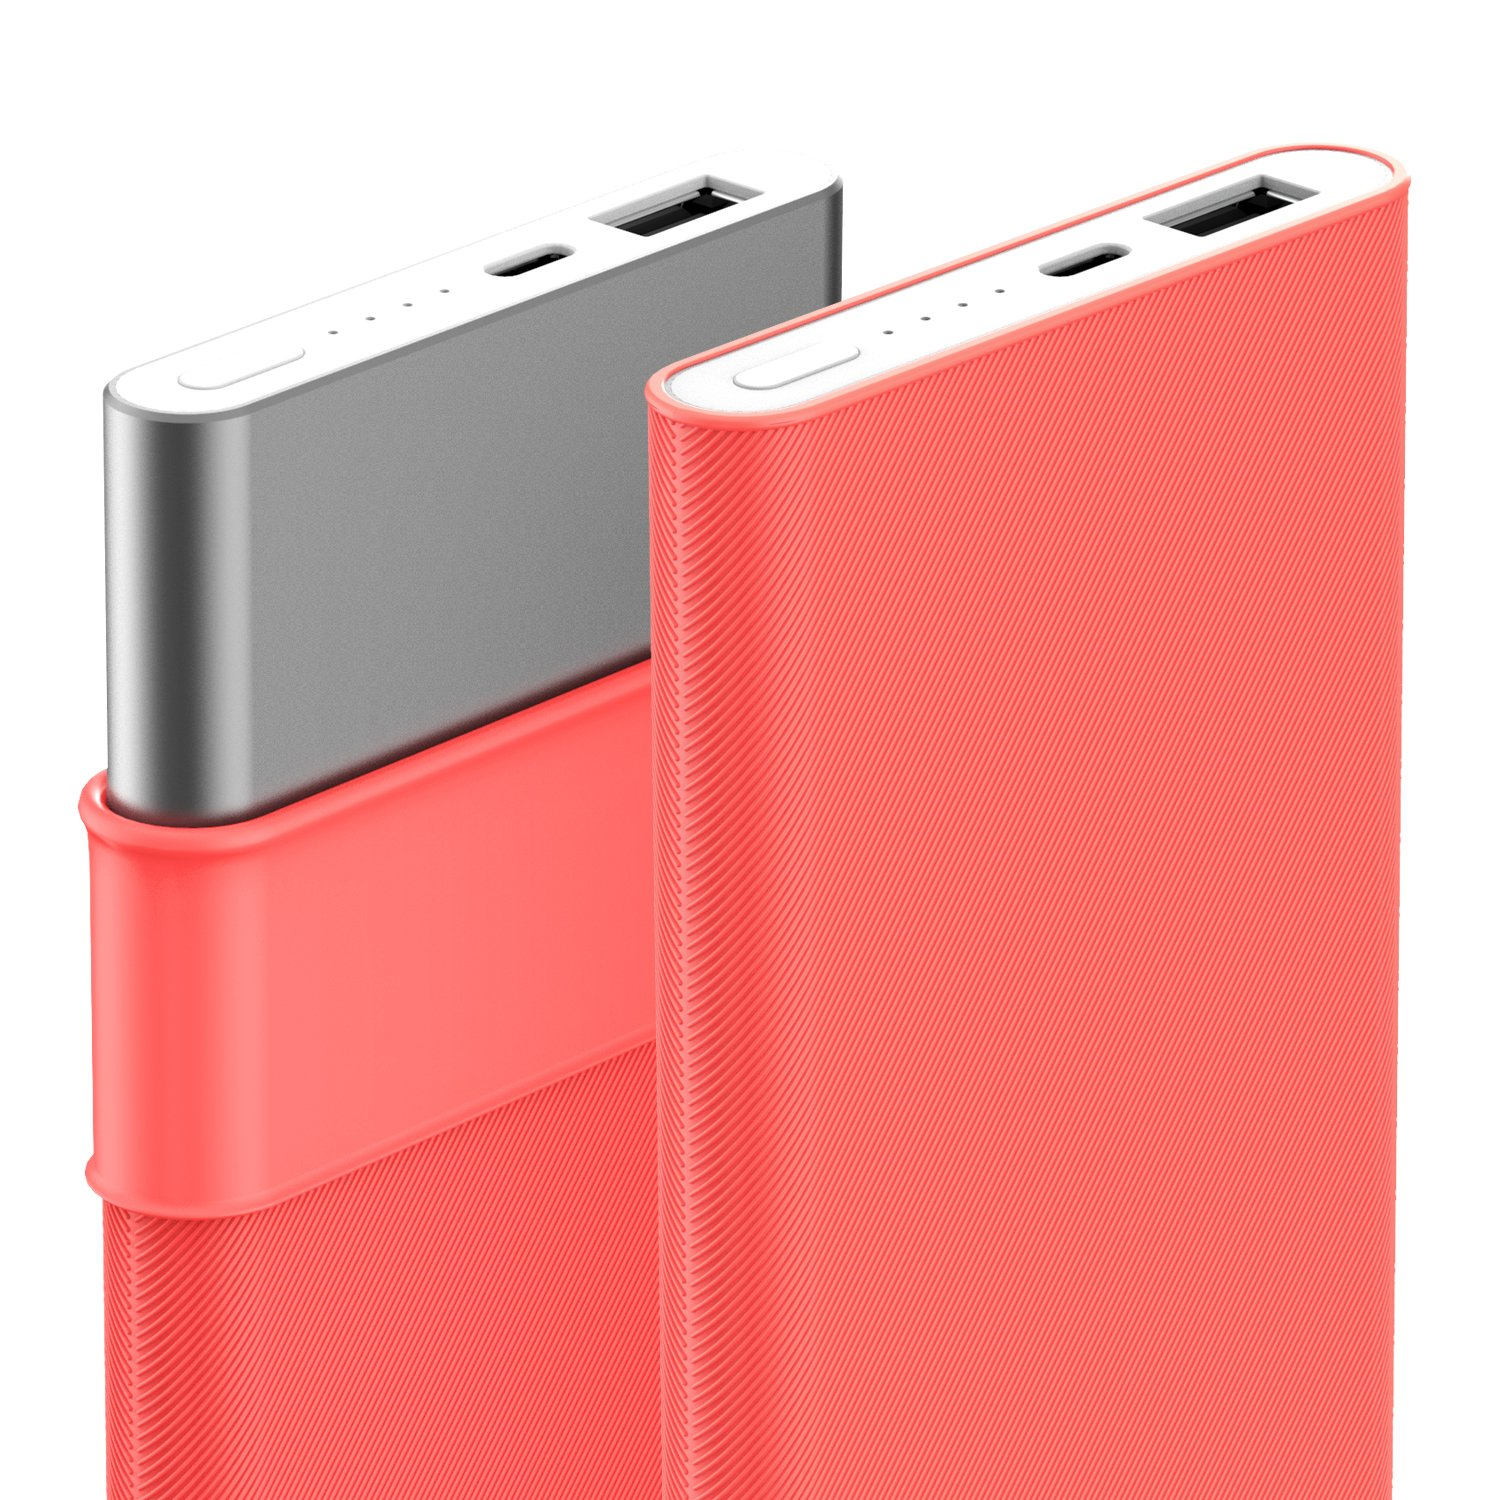 Mi Power Bank Pro 10000mAh Silicone Case, MASCARRY Soft Protective Cover Sleeve for Mi Power Bank Pro 10000mAh Portable Charger- Black/White/Pink ...